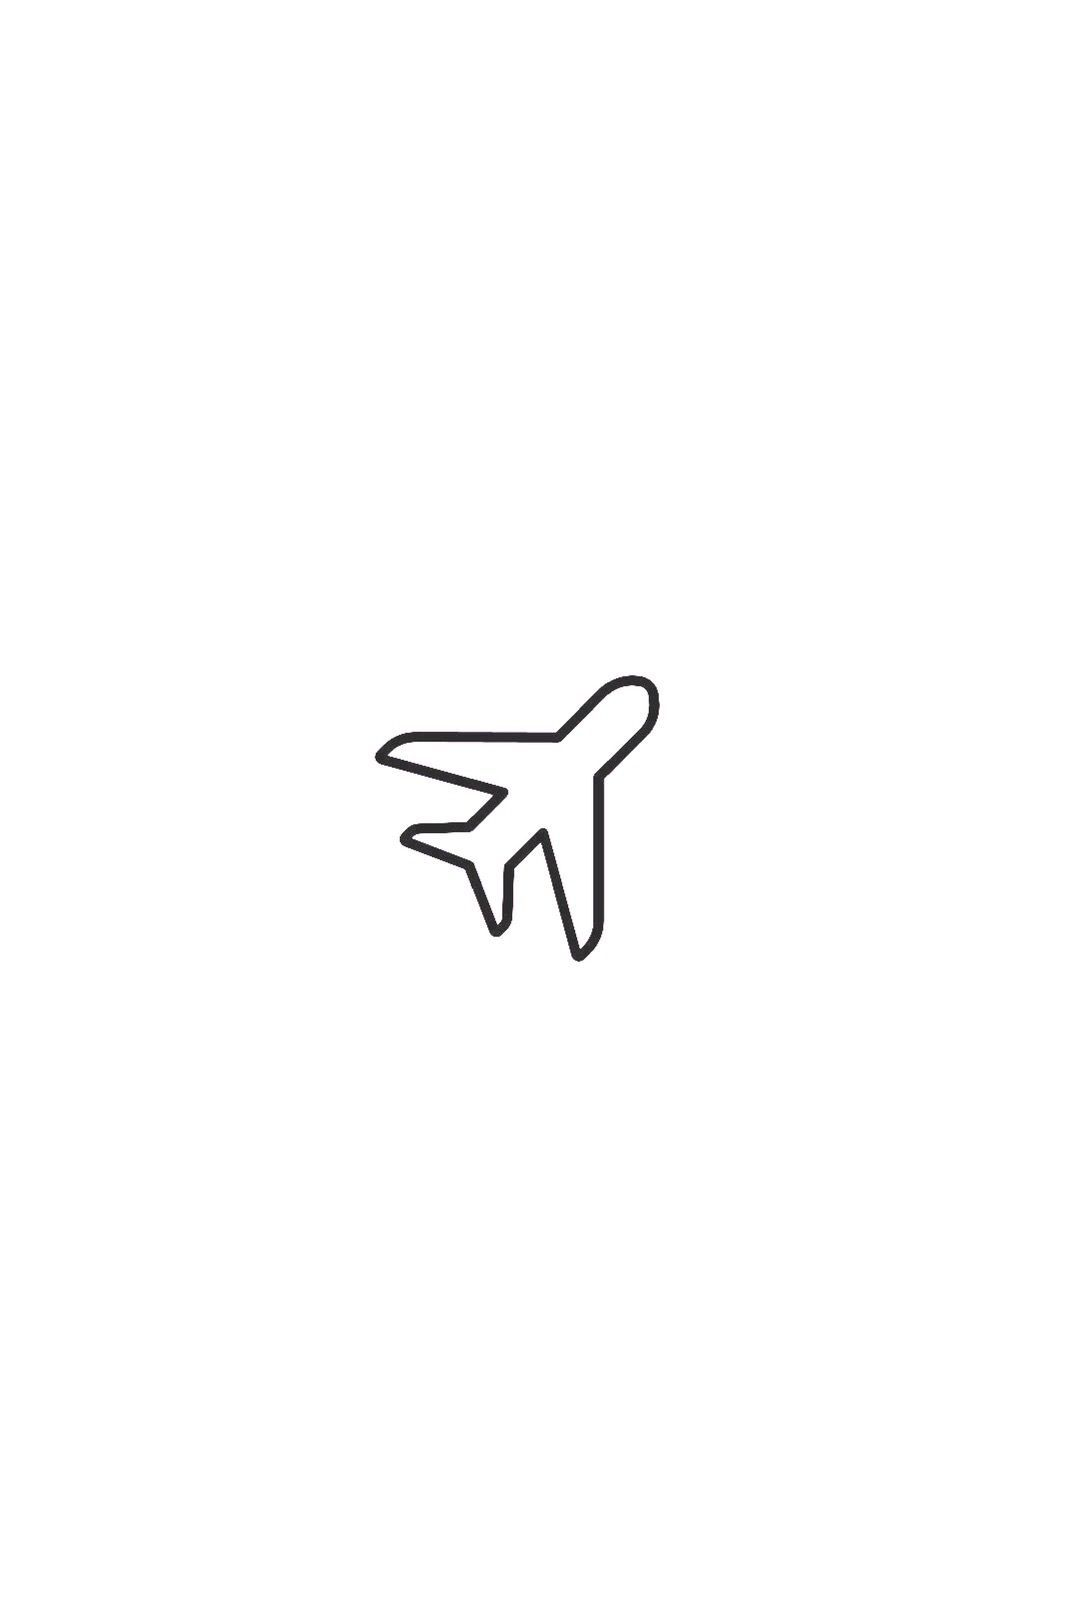 Paper Plane Drawing Tumblr Paper Airplanes Drawings Paper Paper Airplane Drawing Plane Drawing Airplane Drawing